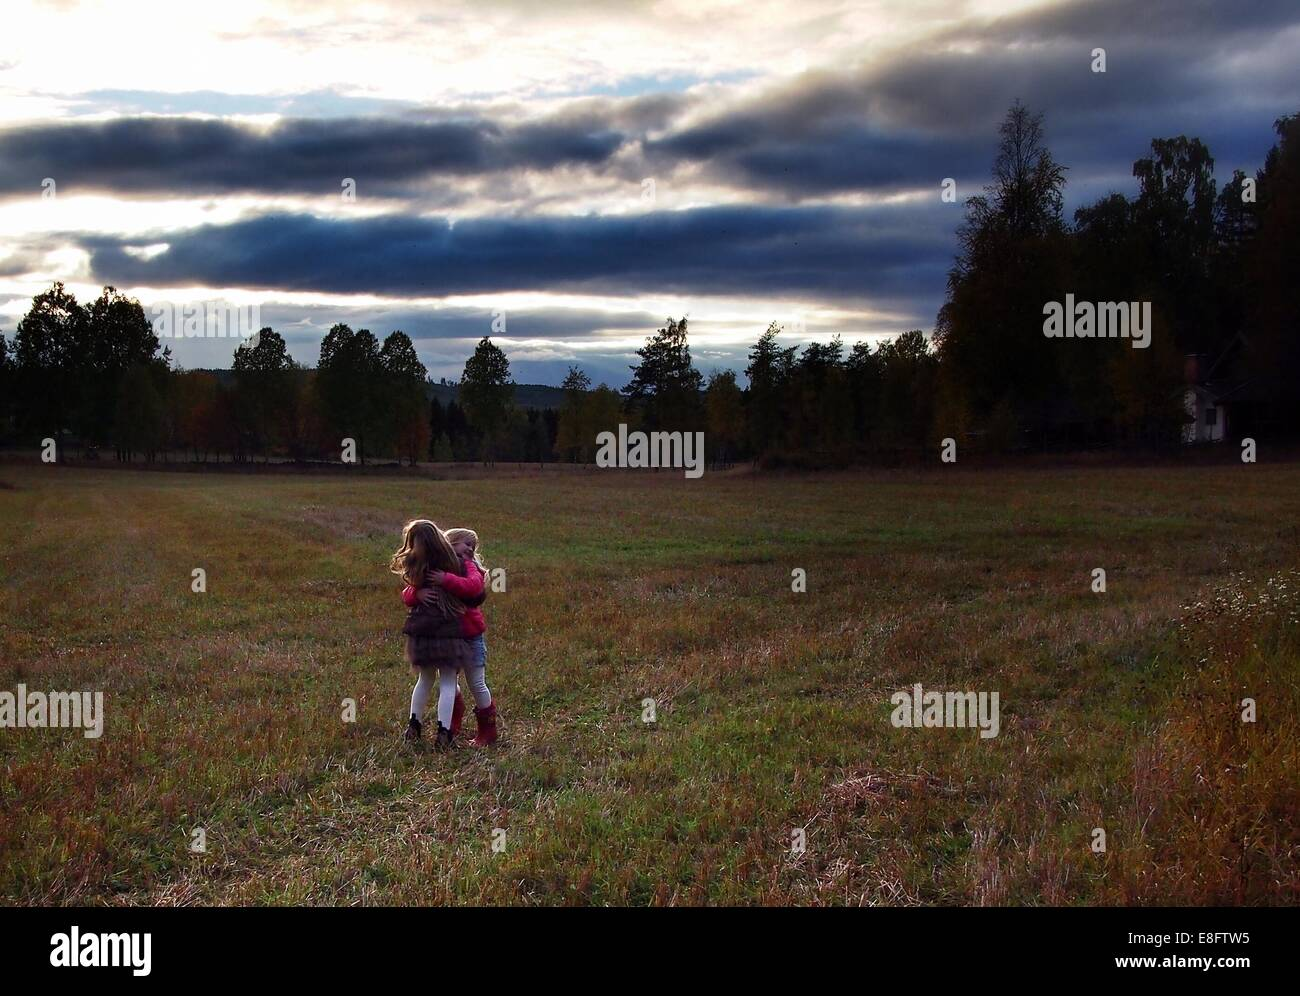 Sweden, Two girls (6-7 years, 8-9 years) hugging outdoors - Stock Image